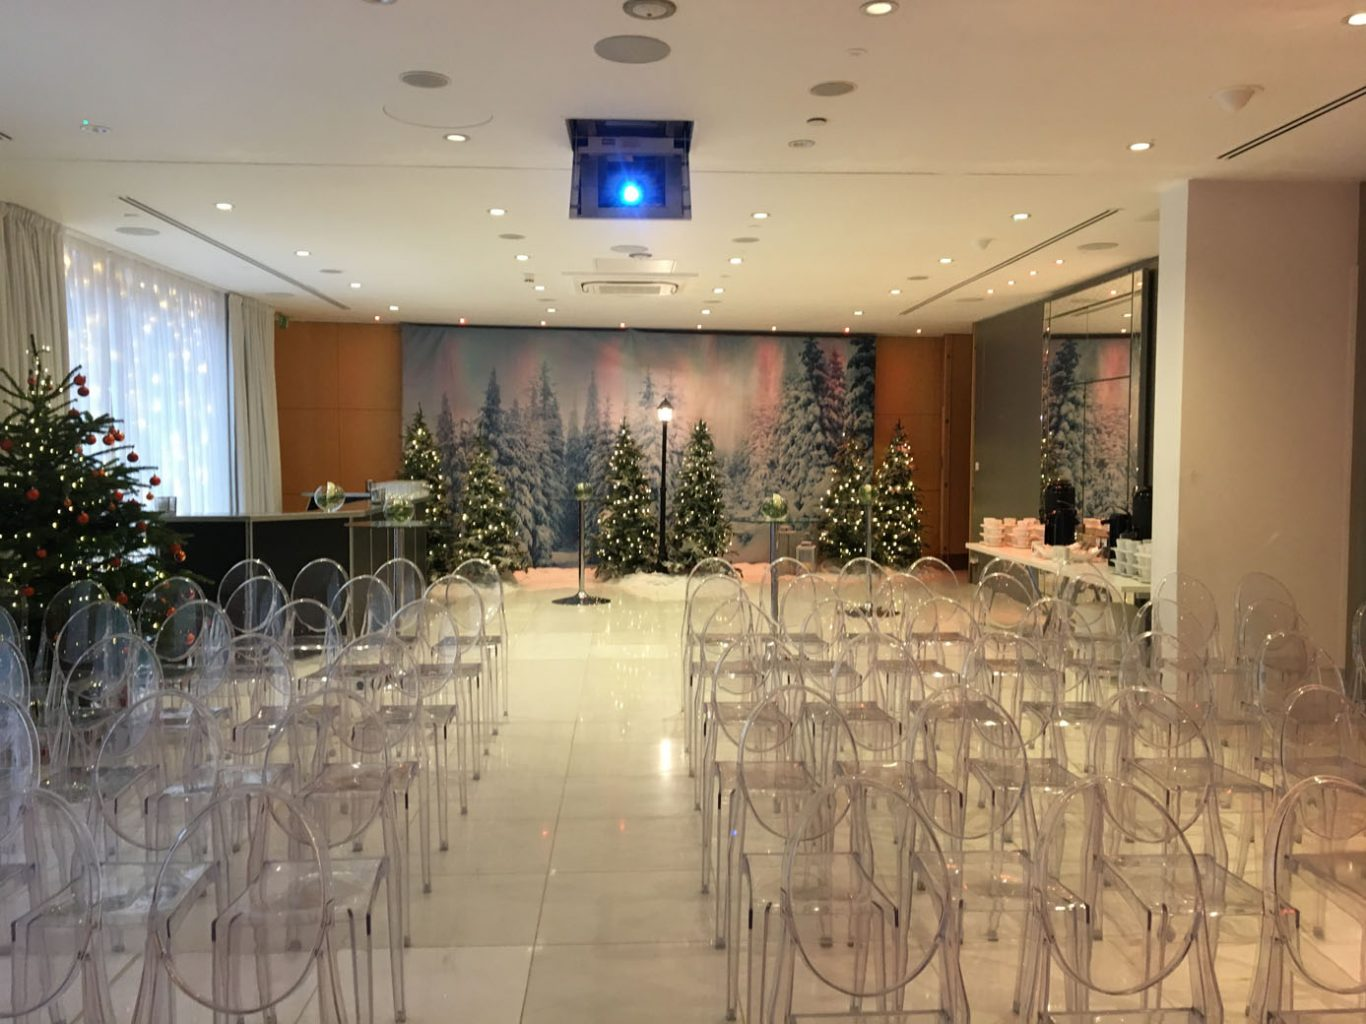 IMG 4200 - Narnia Themed Christmas Sales Conference